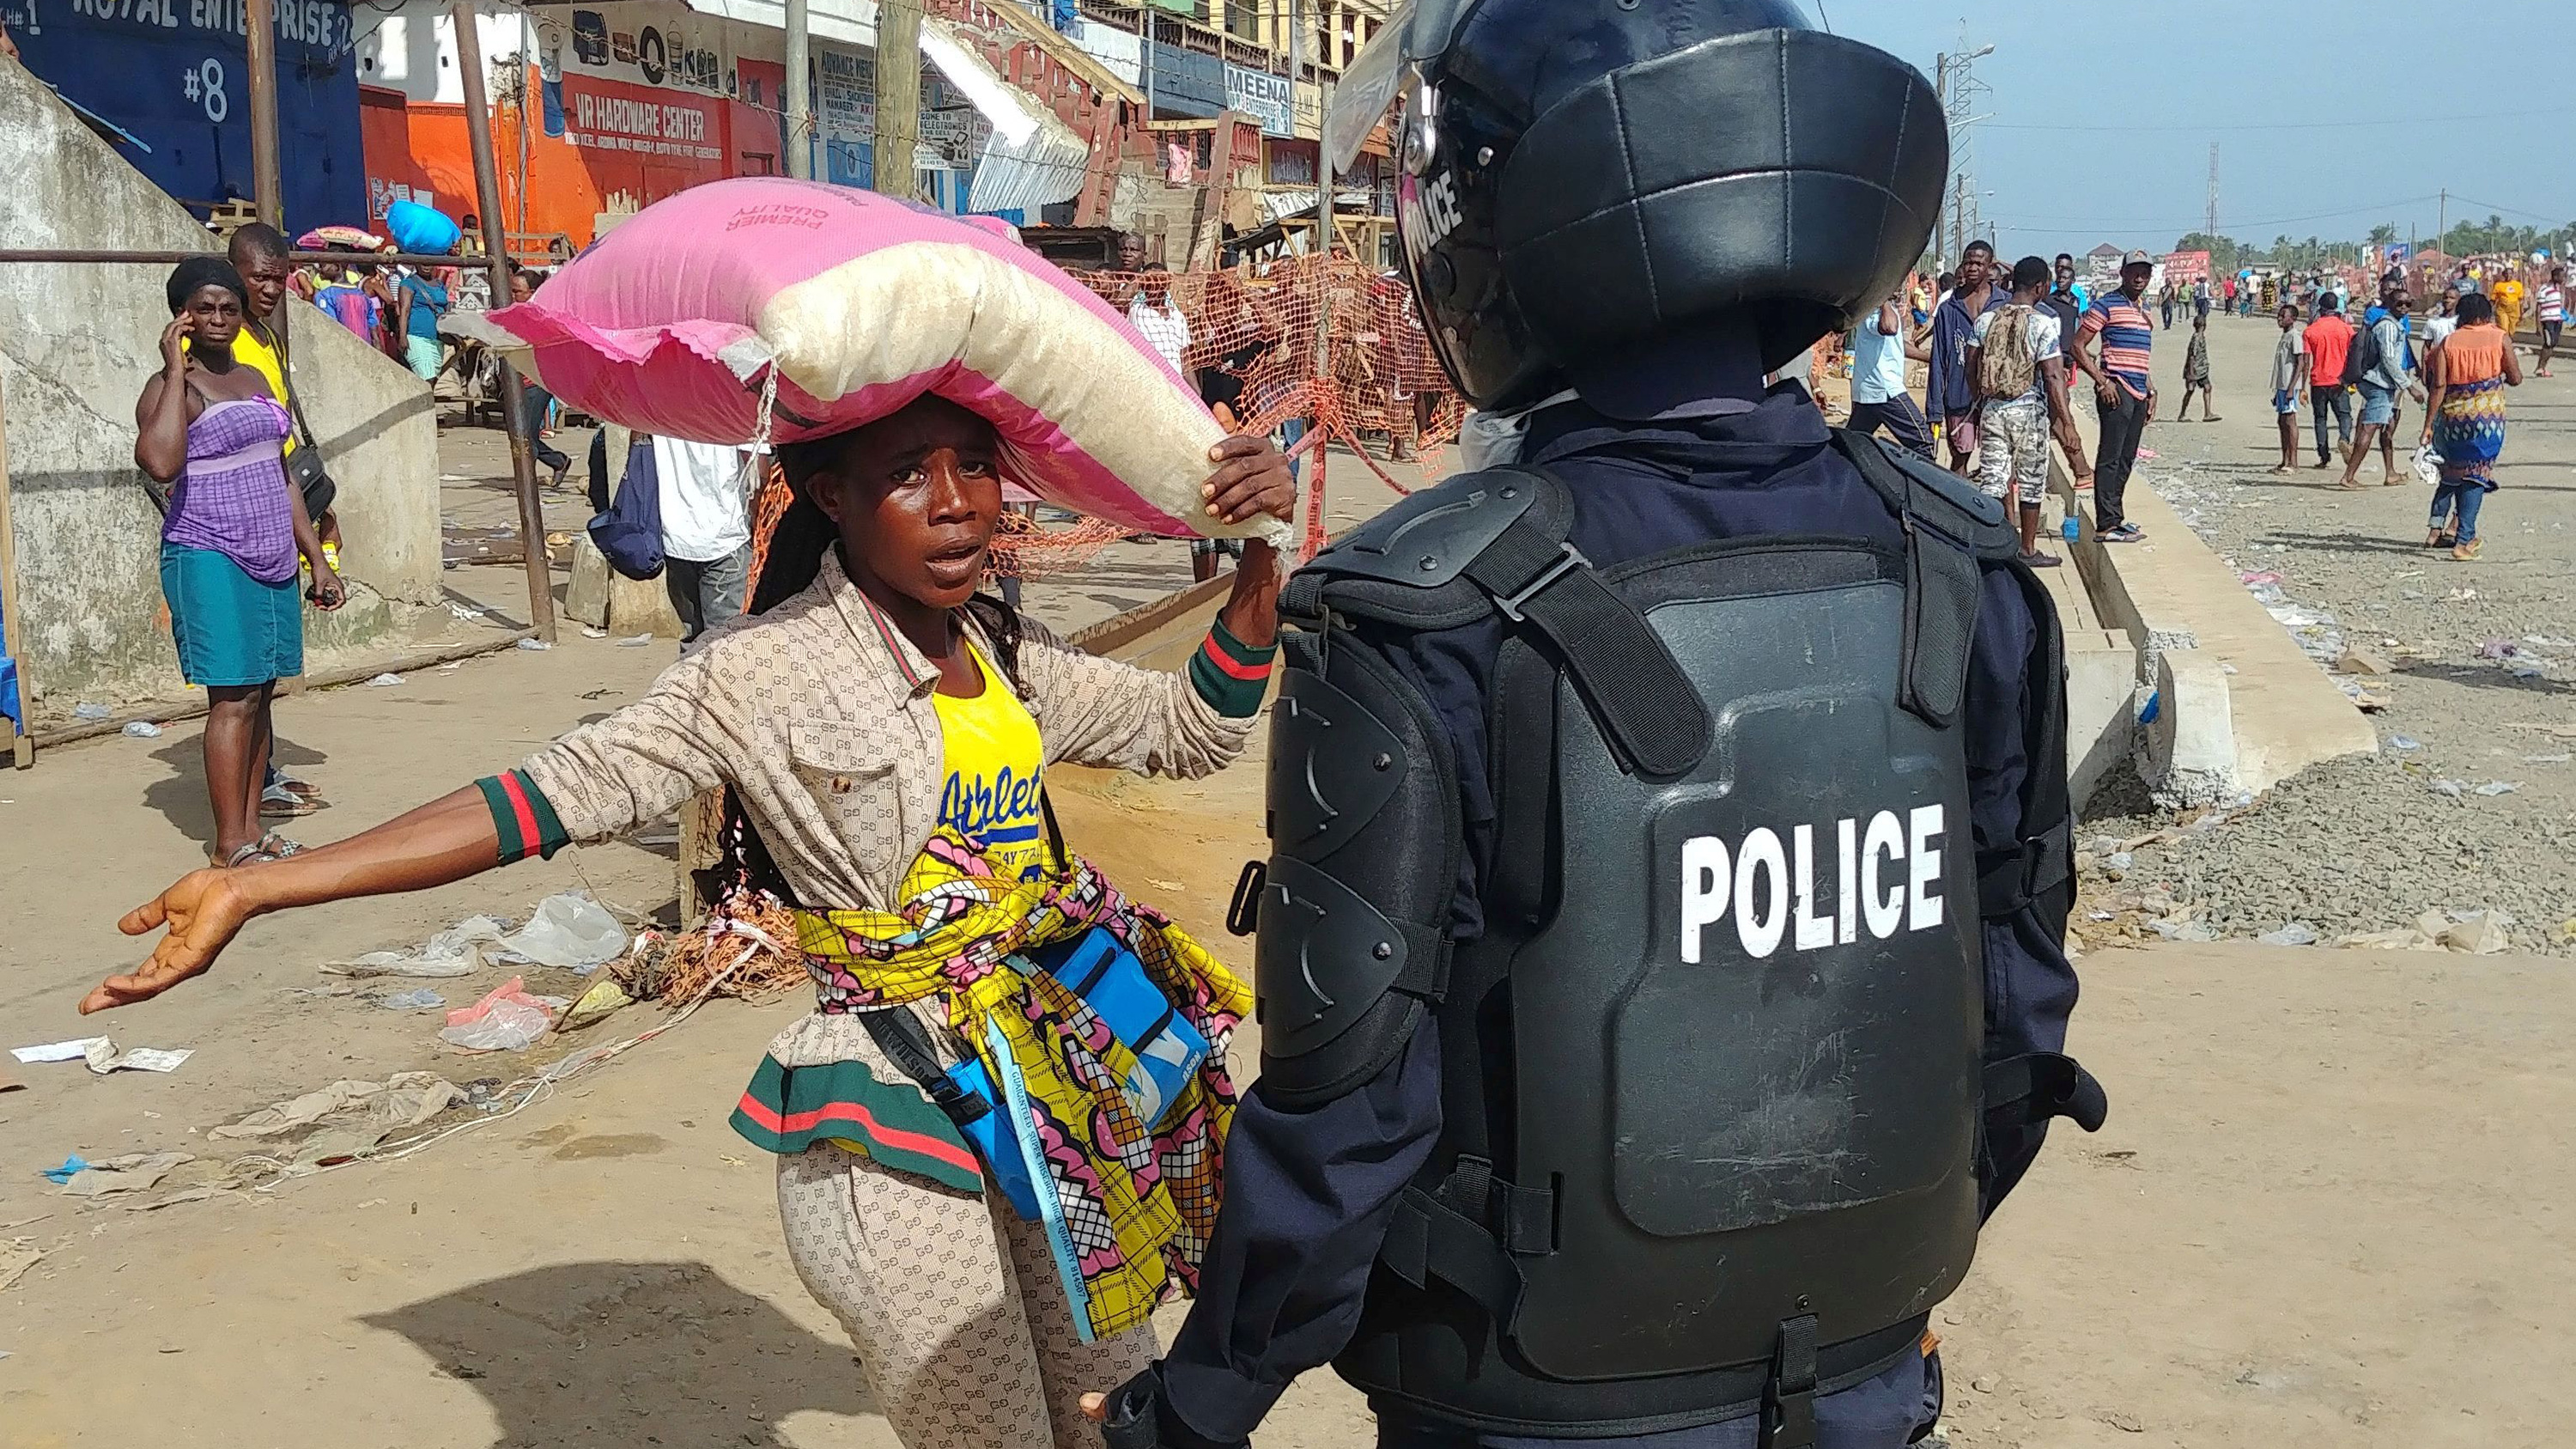 Picture shows a woman with a large sack hoisted above her shoulders confronted by a uniformed police officer.